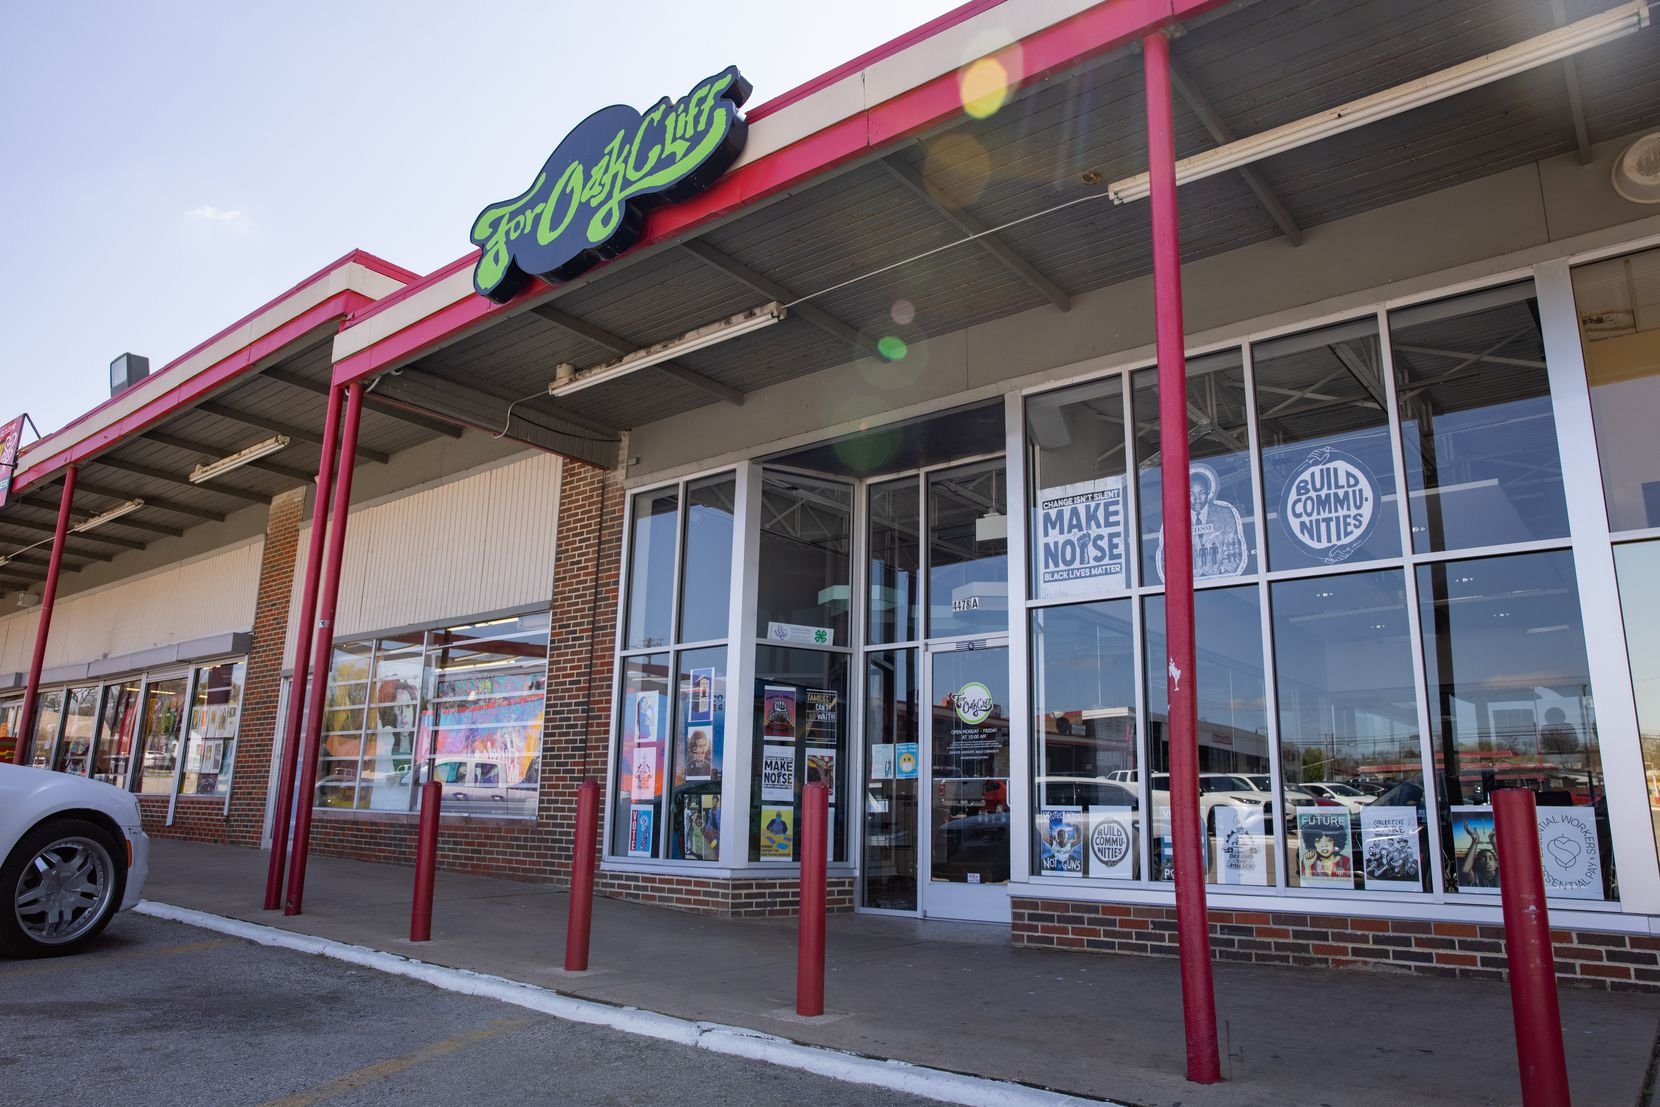 The For Oak Cliff nonprofit has operated since 2017 out of the Glendale Shopping Center, less than a mile north of the old Moorland YMCA.  The nonprofit will continue using this storefront for some of its activities. The shopping center space is special to Toynes because it is near the store his grandfather owned while Toynes was growing up.